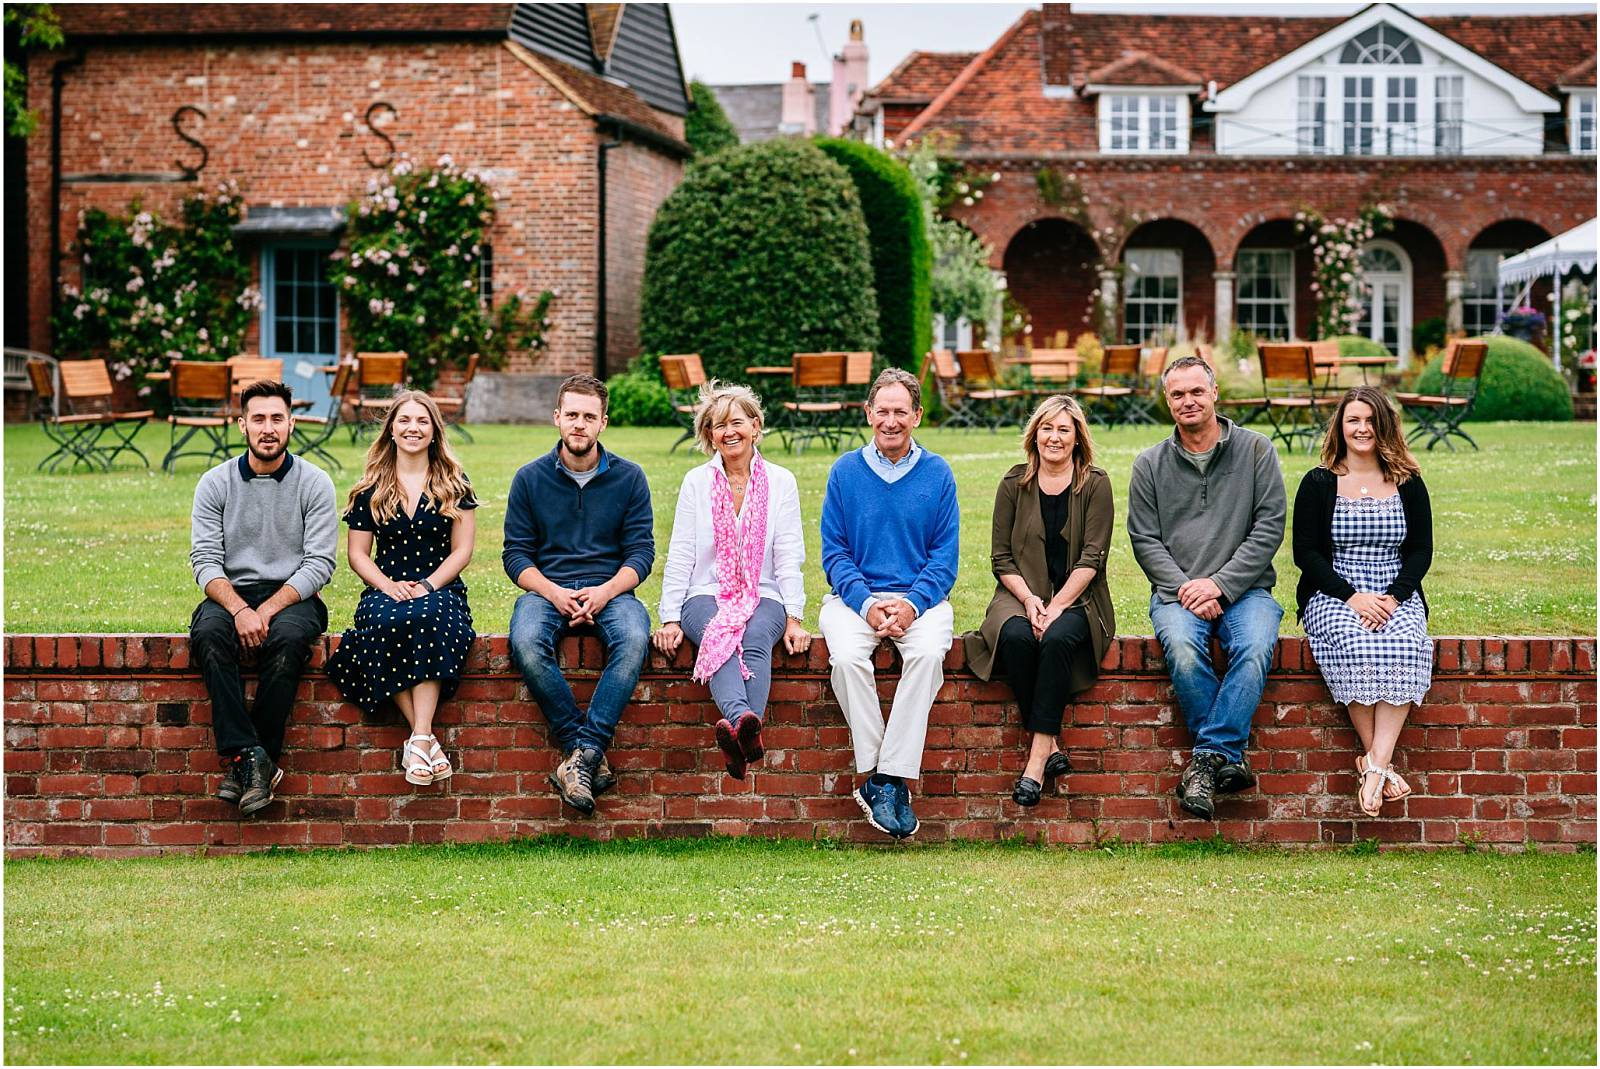 Hertfordshire Commercial Photographer – the Micklefield Hall staff